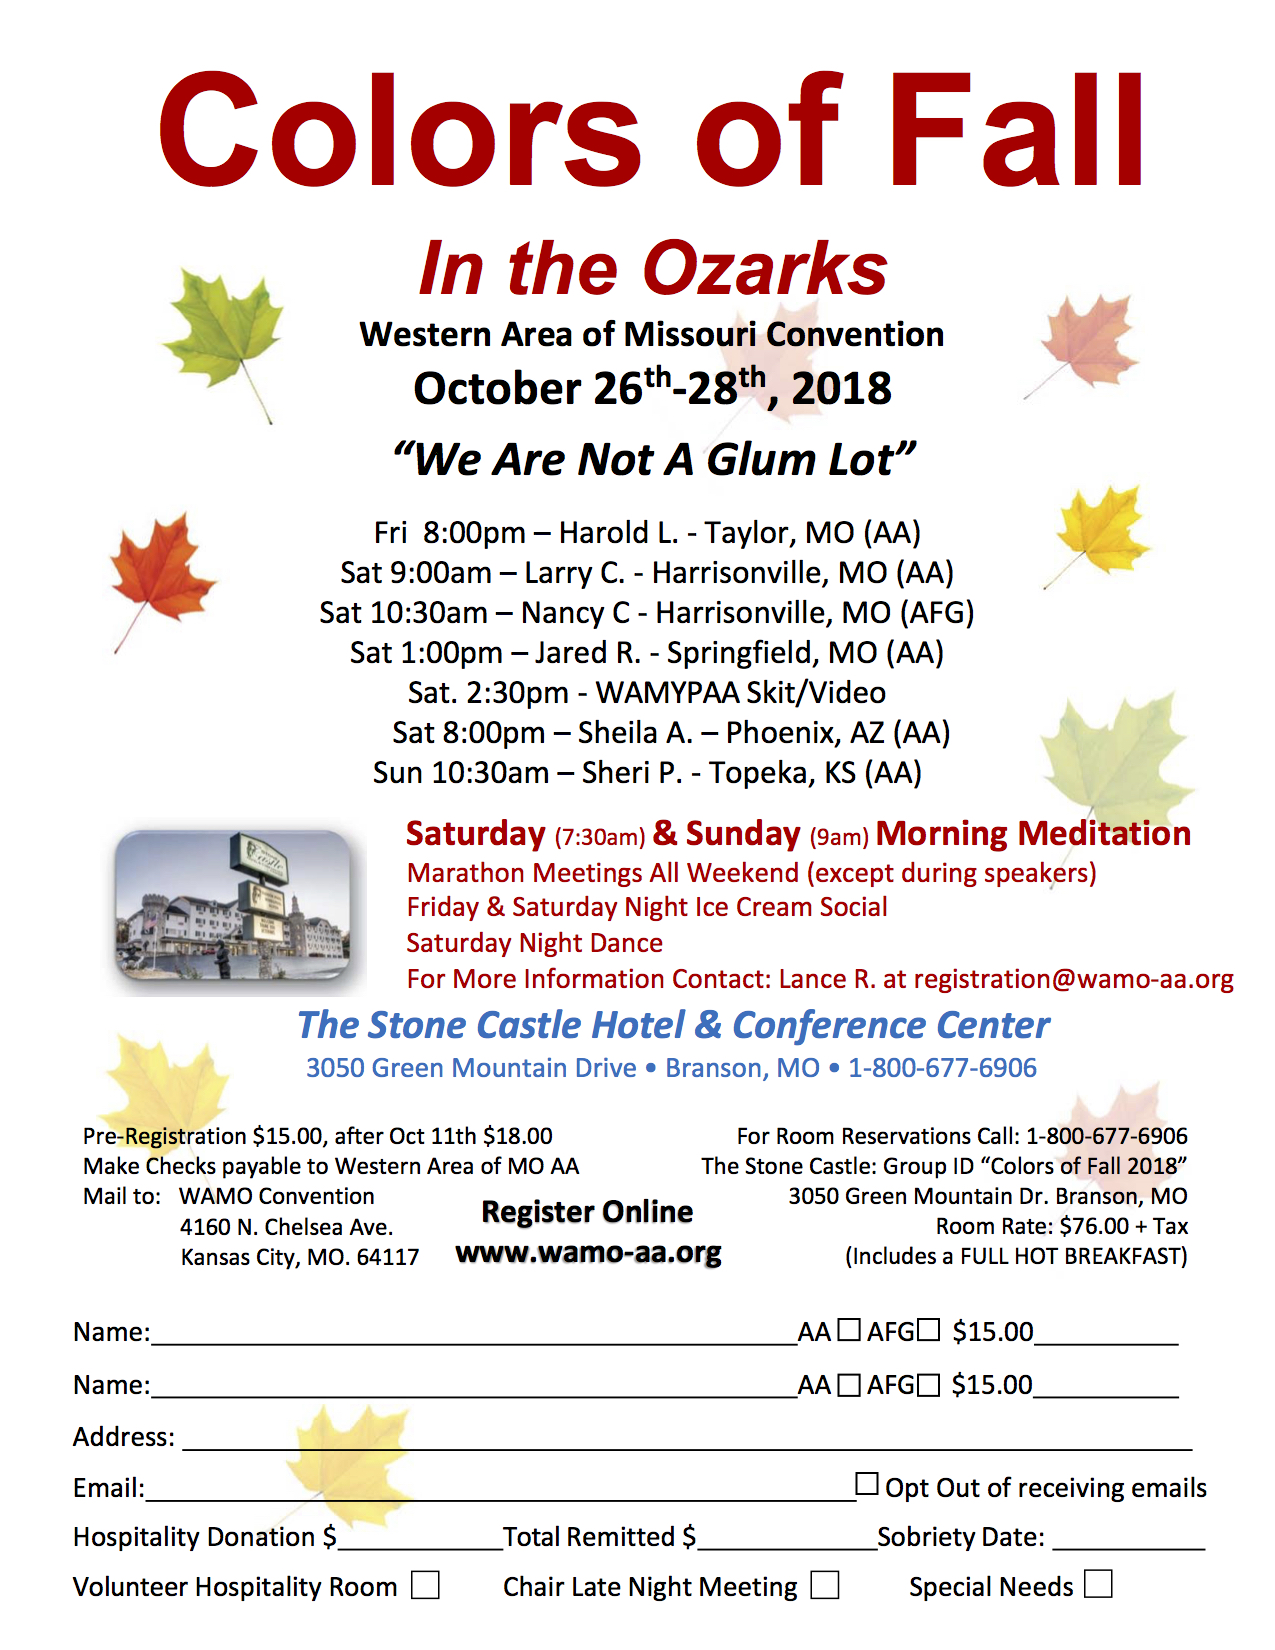 Colors Of Fall In The Ozarks 2018 Central Office Of